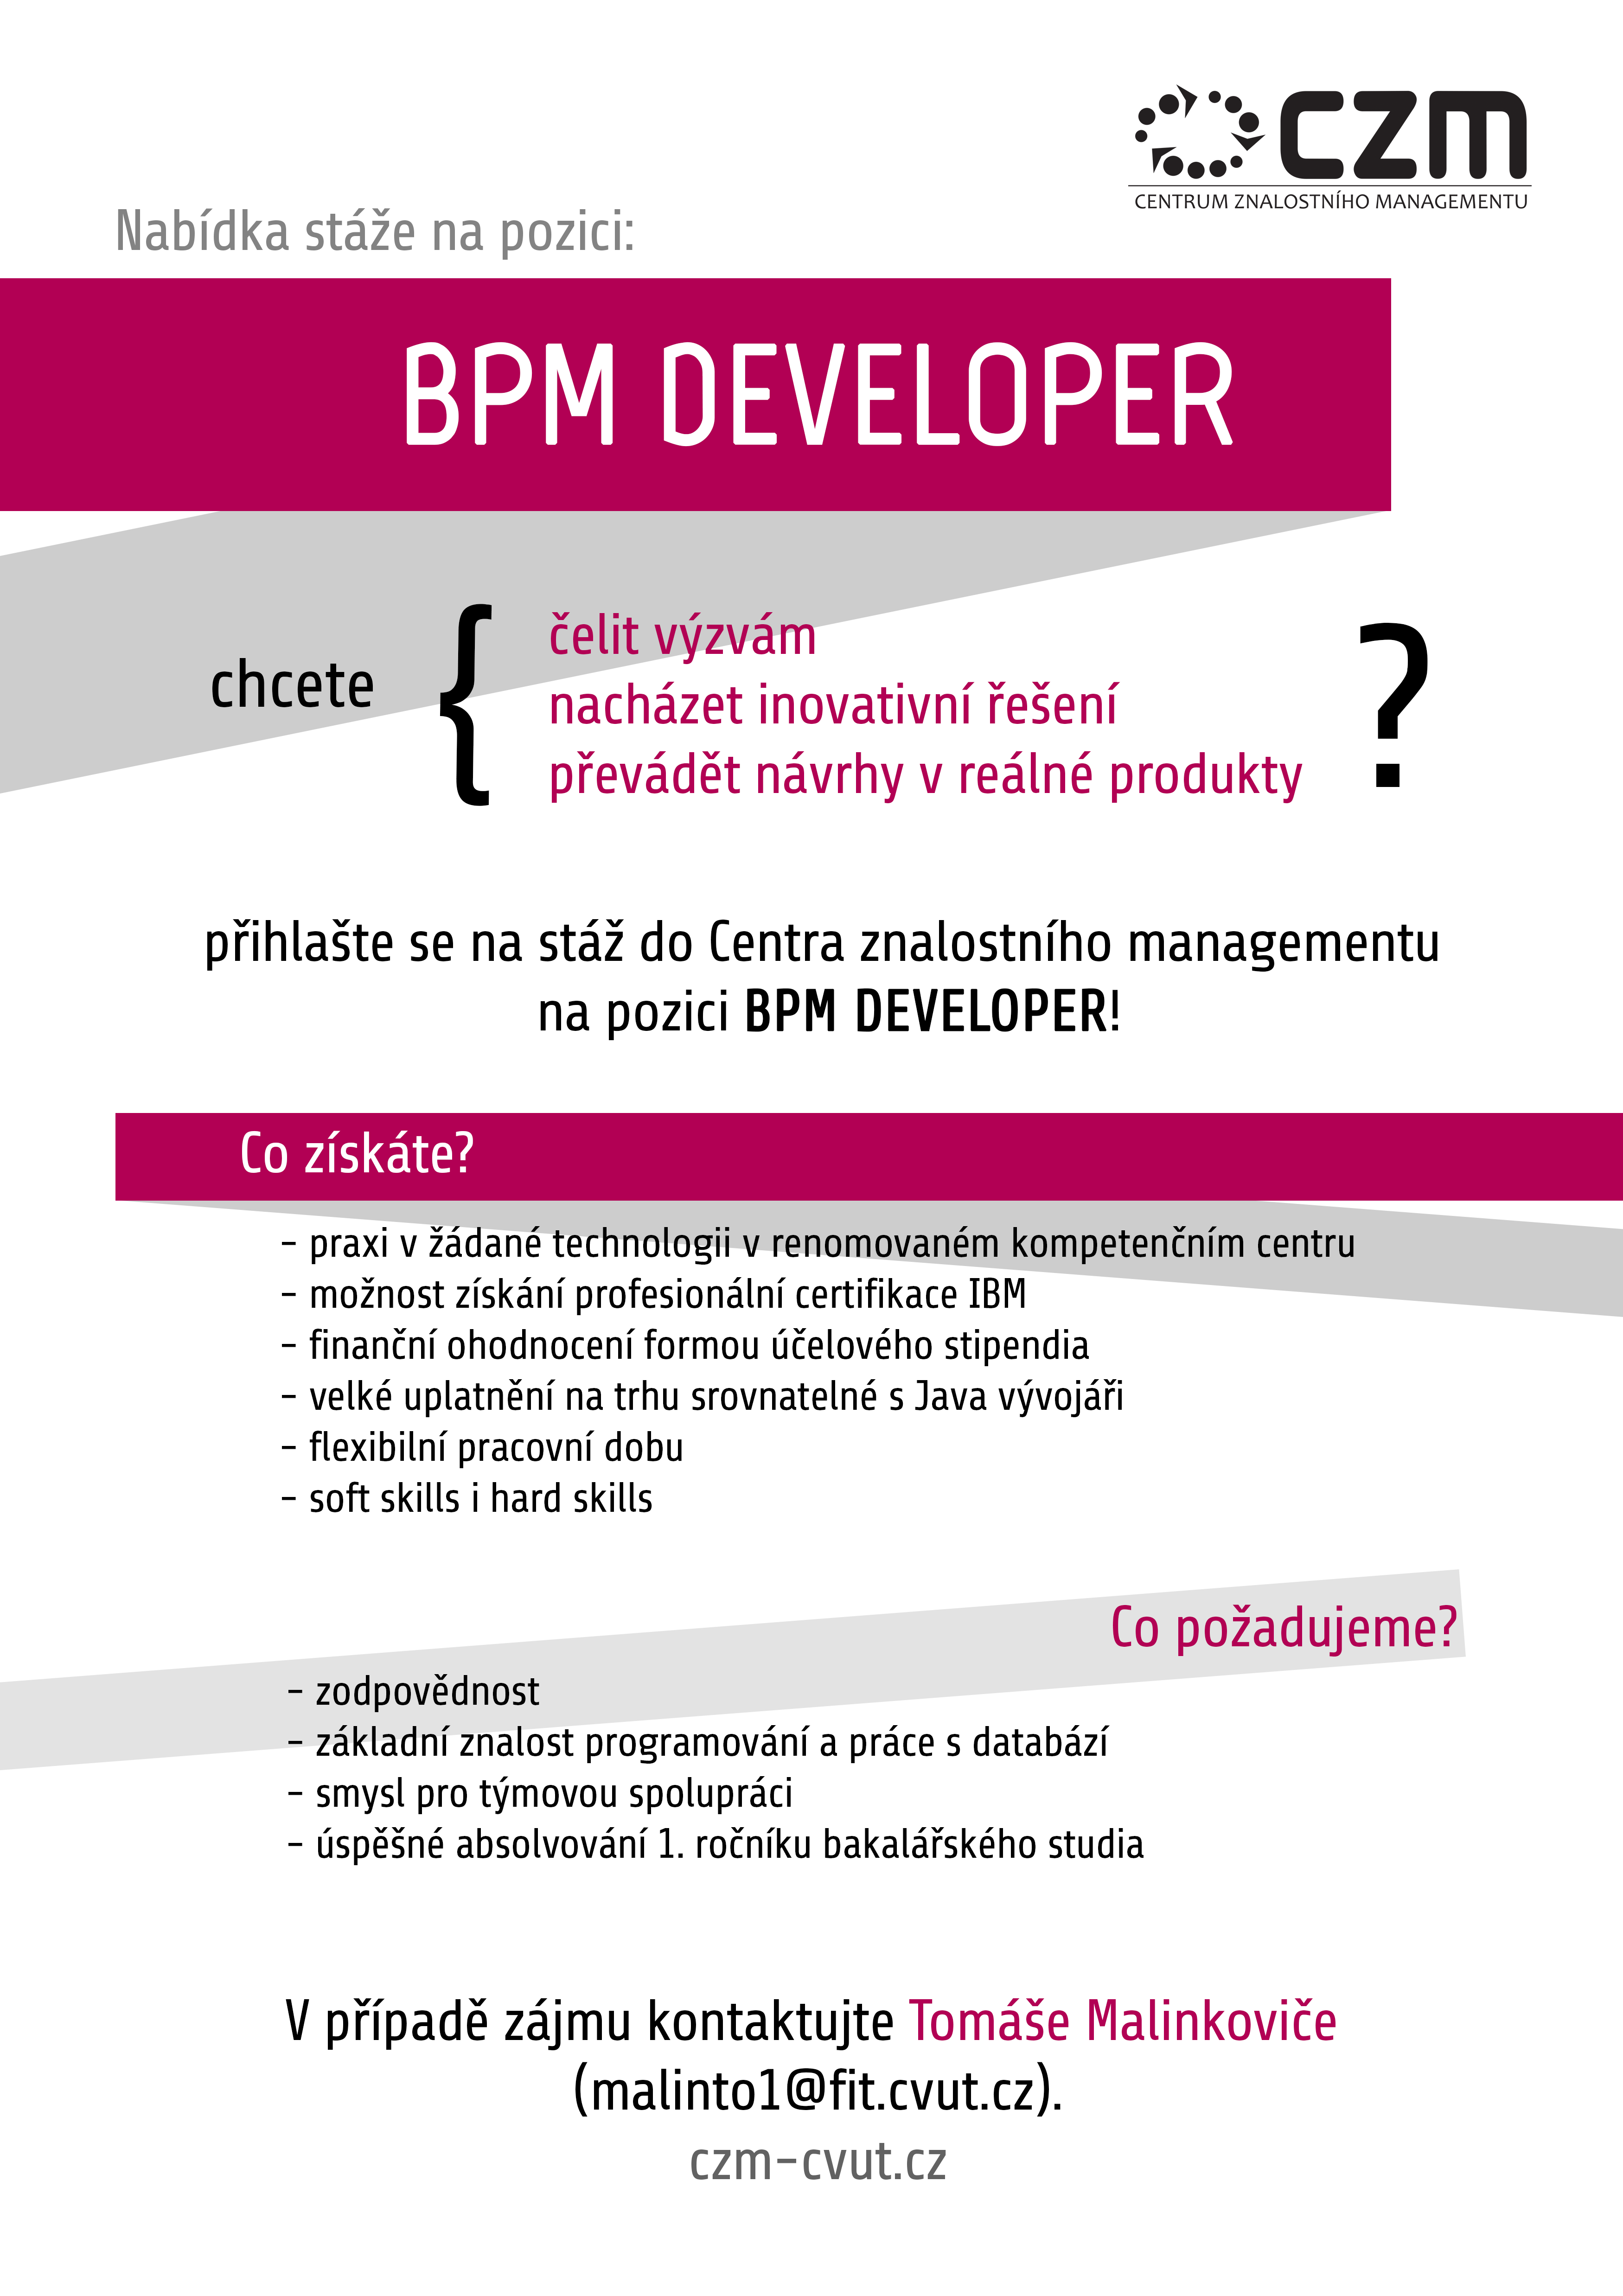 BPM Developer job